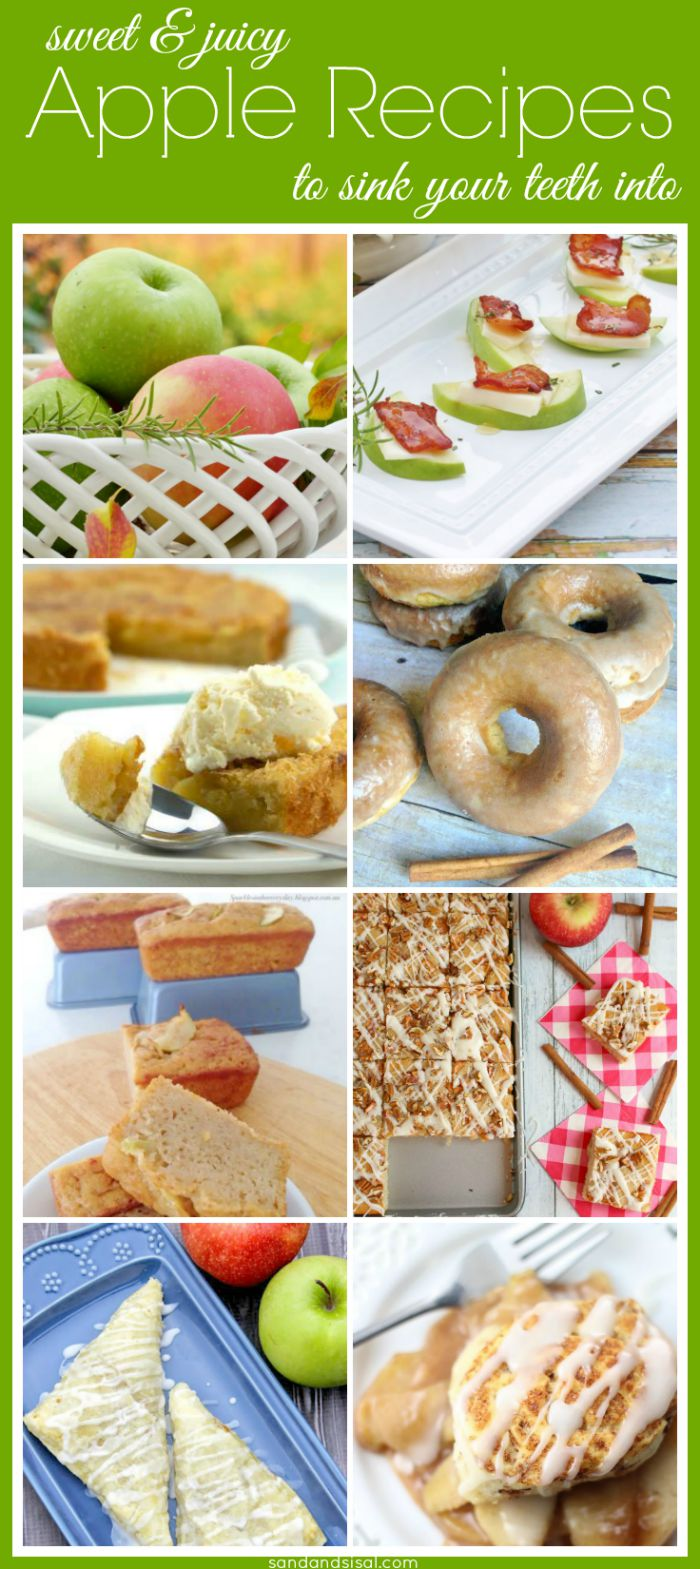 Sweet & Juicy Apple Recipes to Sink Your Teeth Into- These are easy to make and taste oh so good! Perfect for fall!